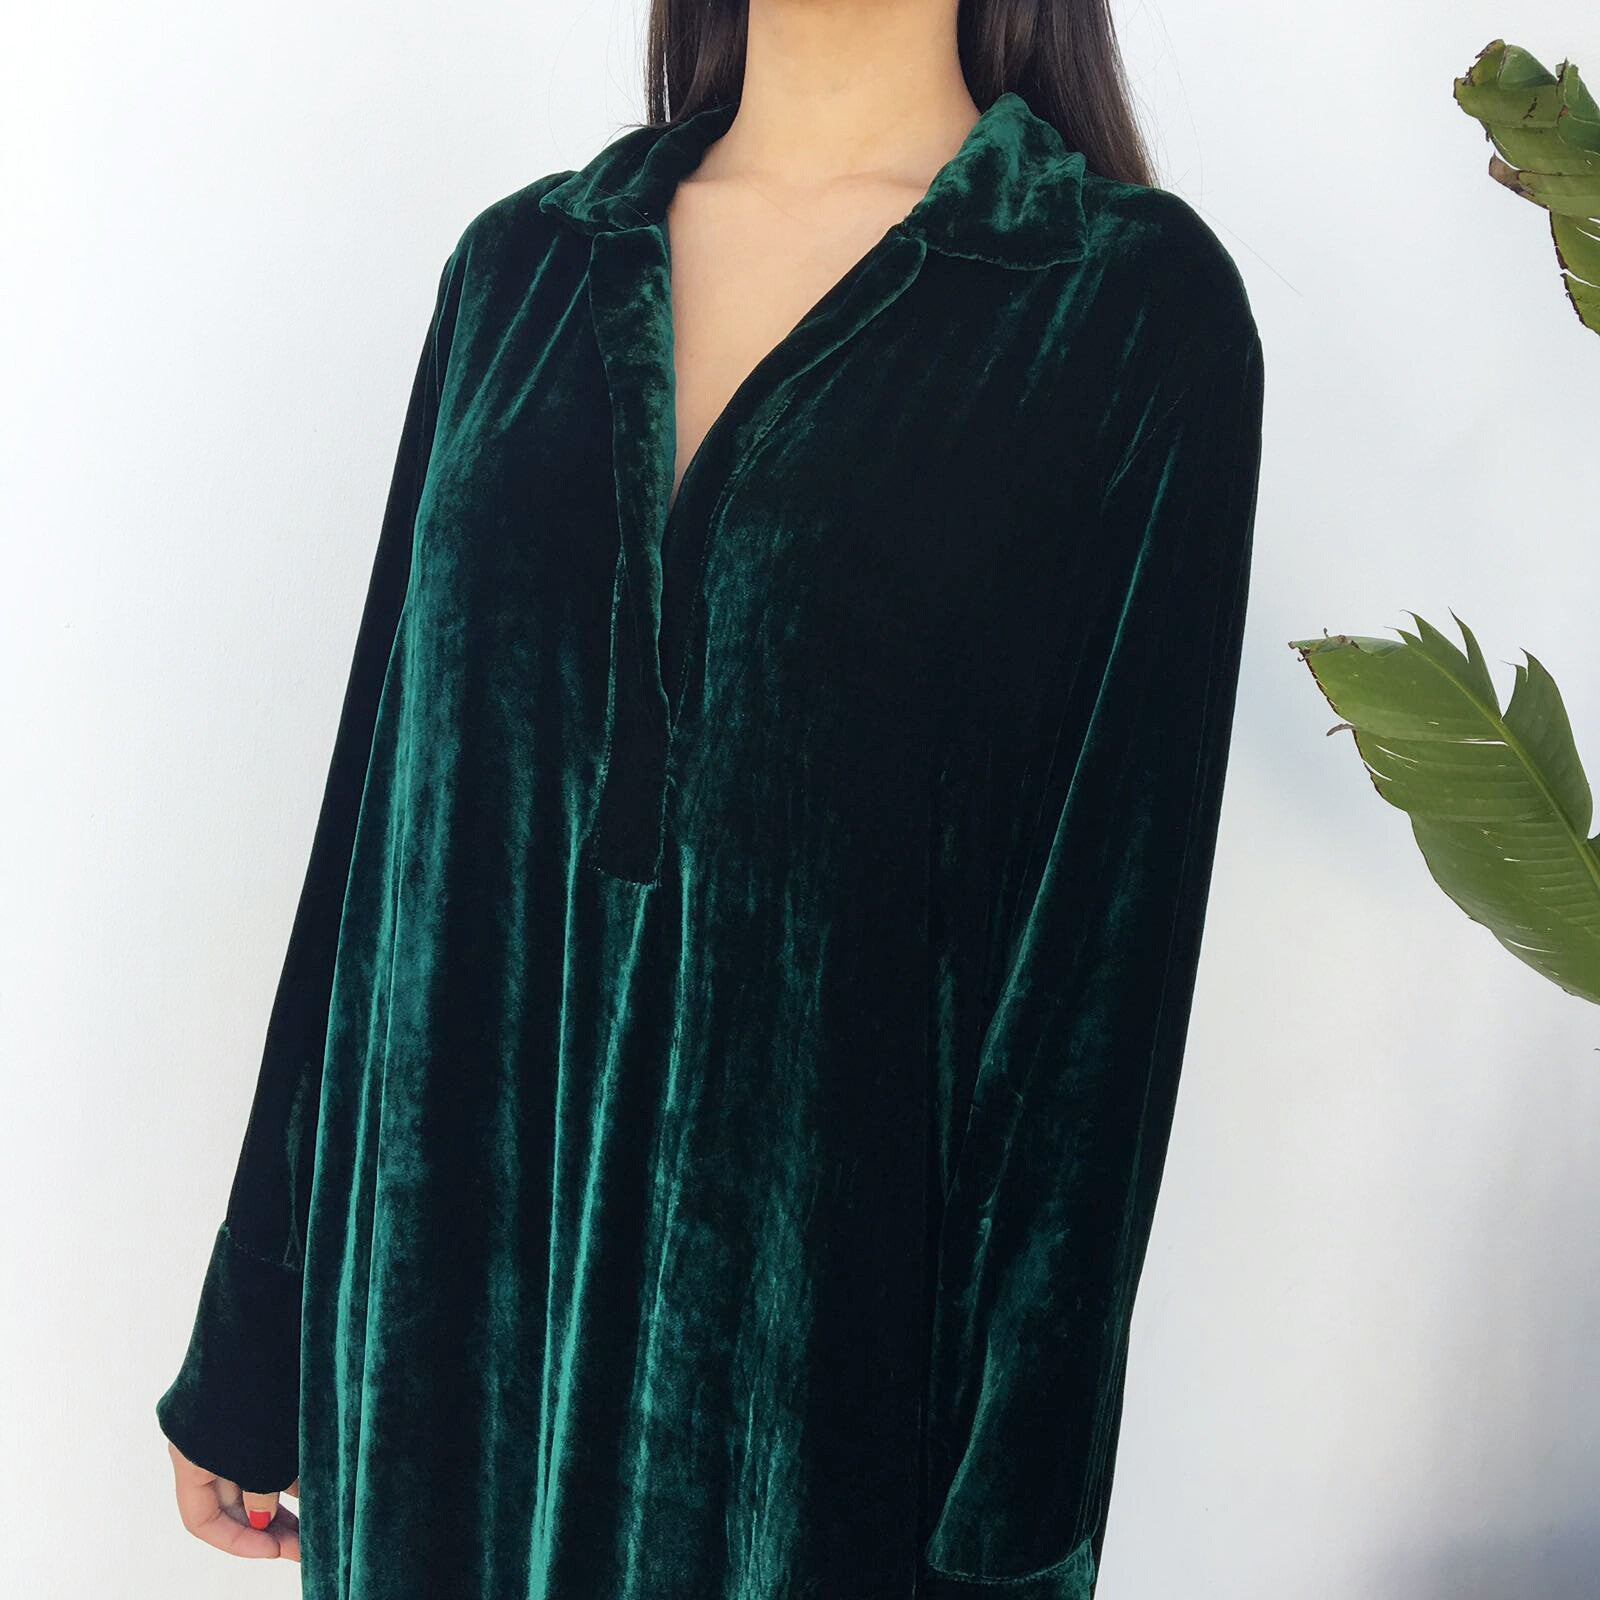 Emerald green velvet shirt dress haute elan Emerald green mens dress shirt